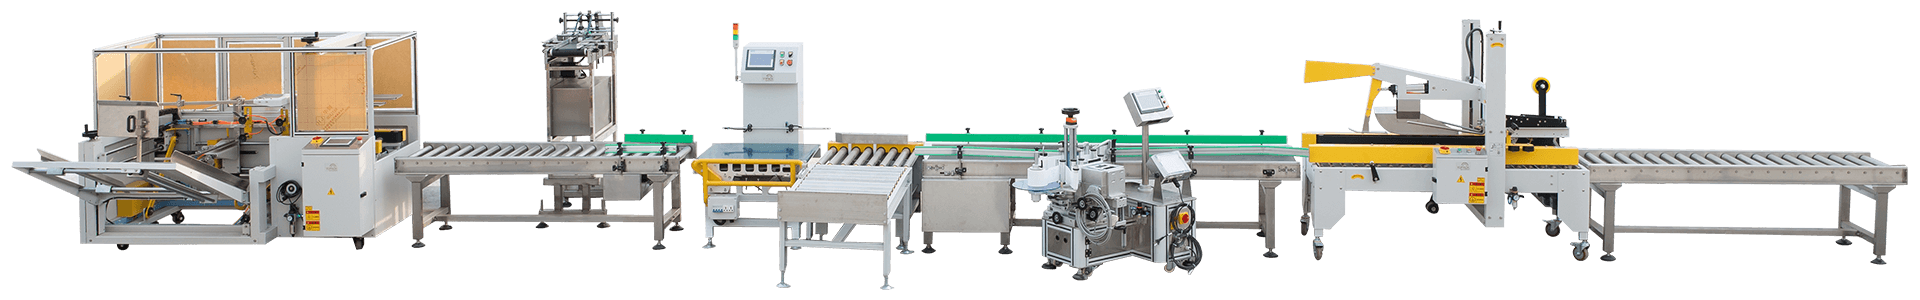 Automatic-case-packing-line